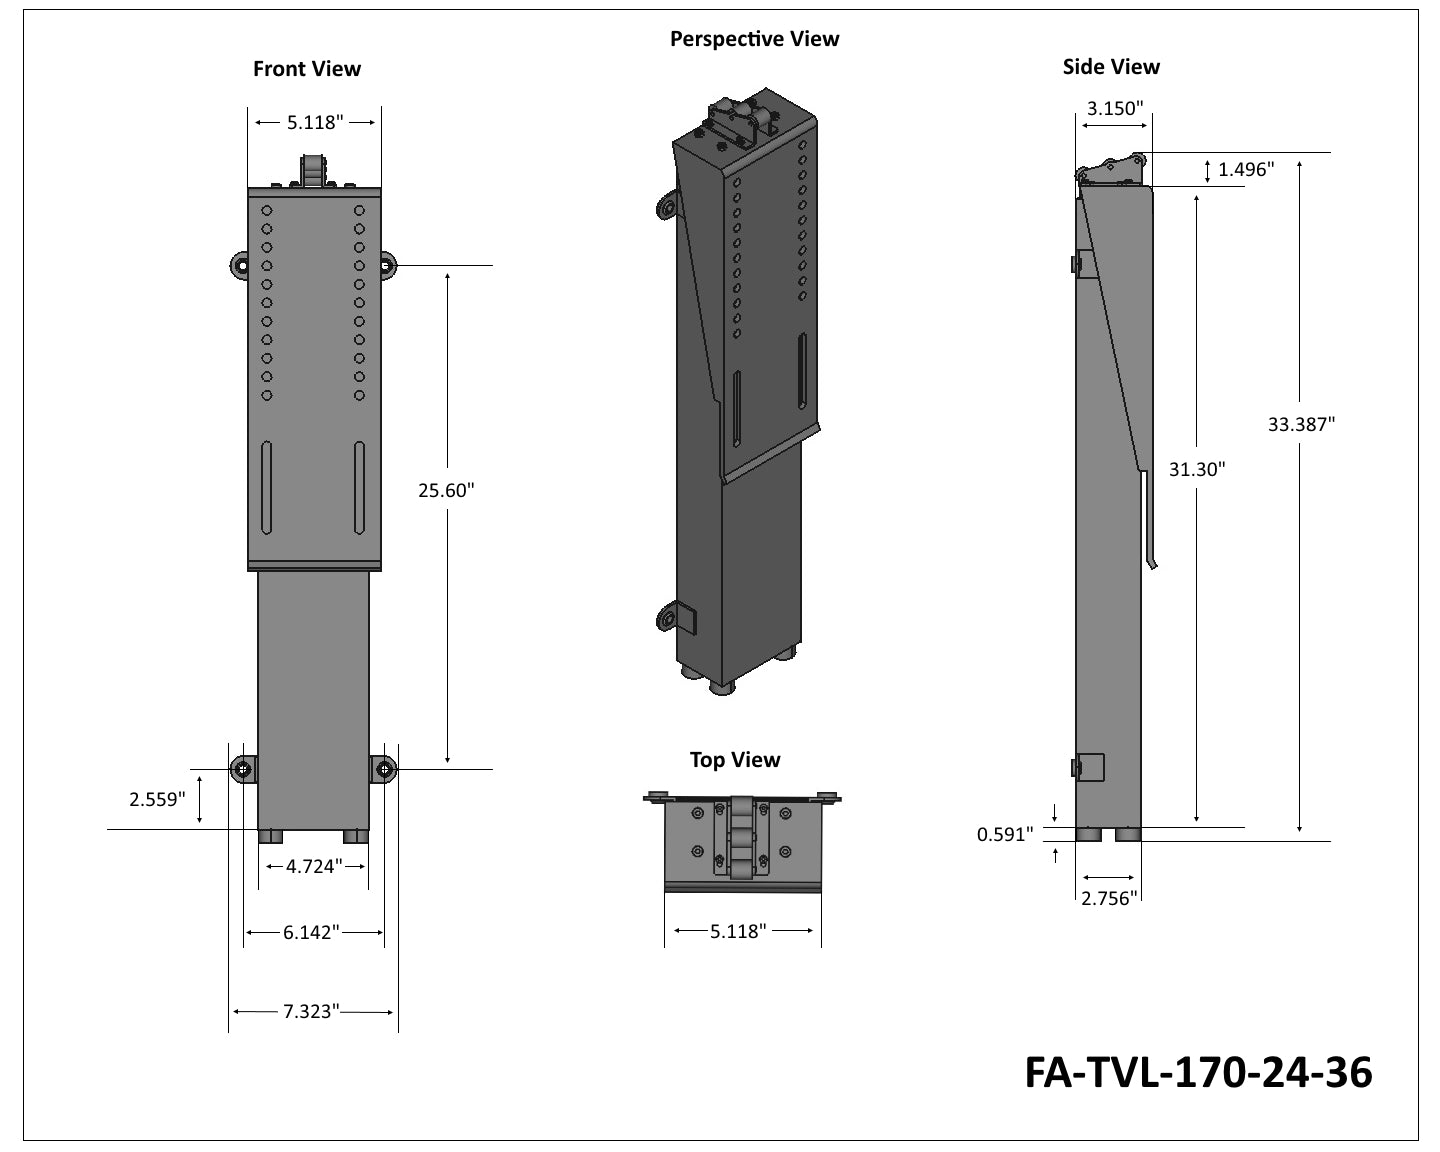 FA-TVL-170-24-36 Tech Drawing